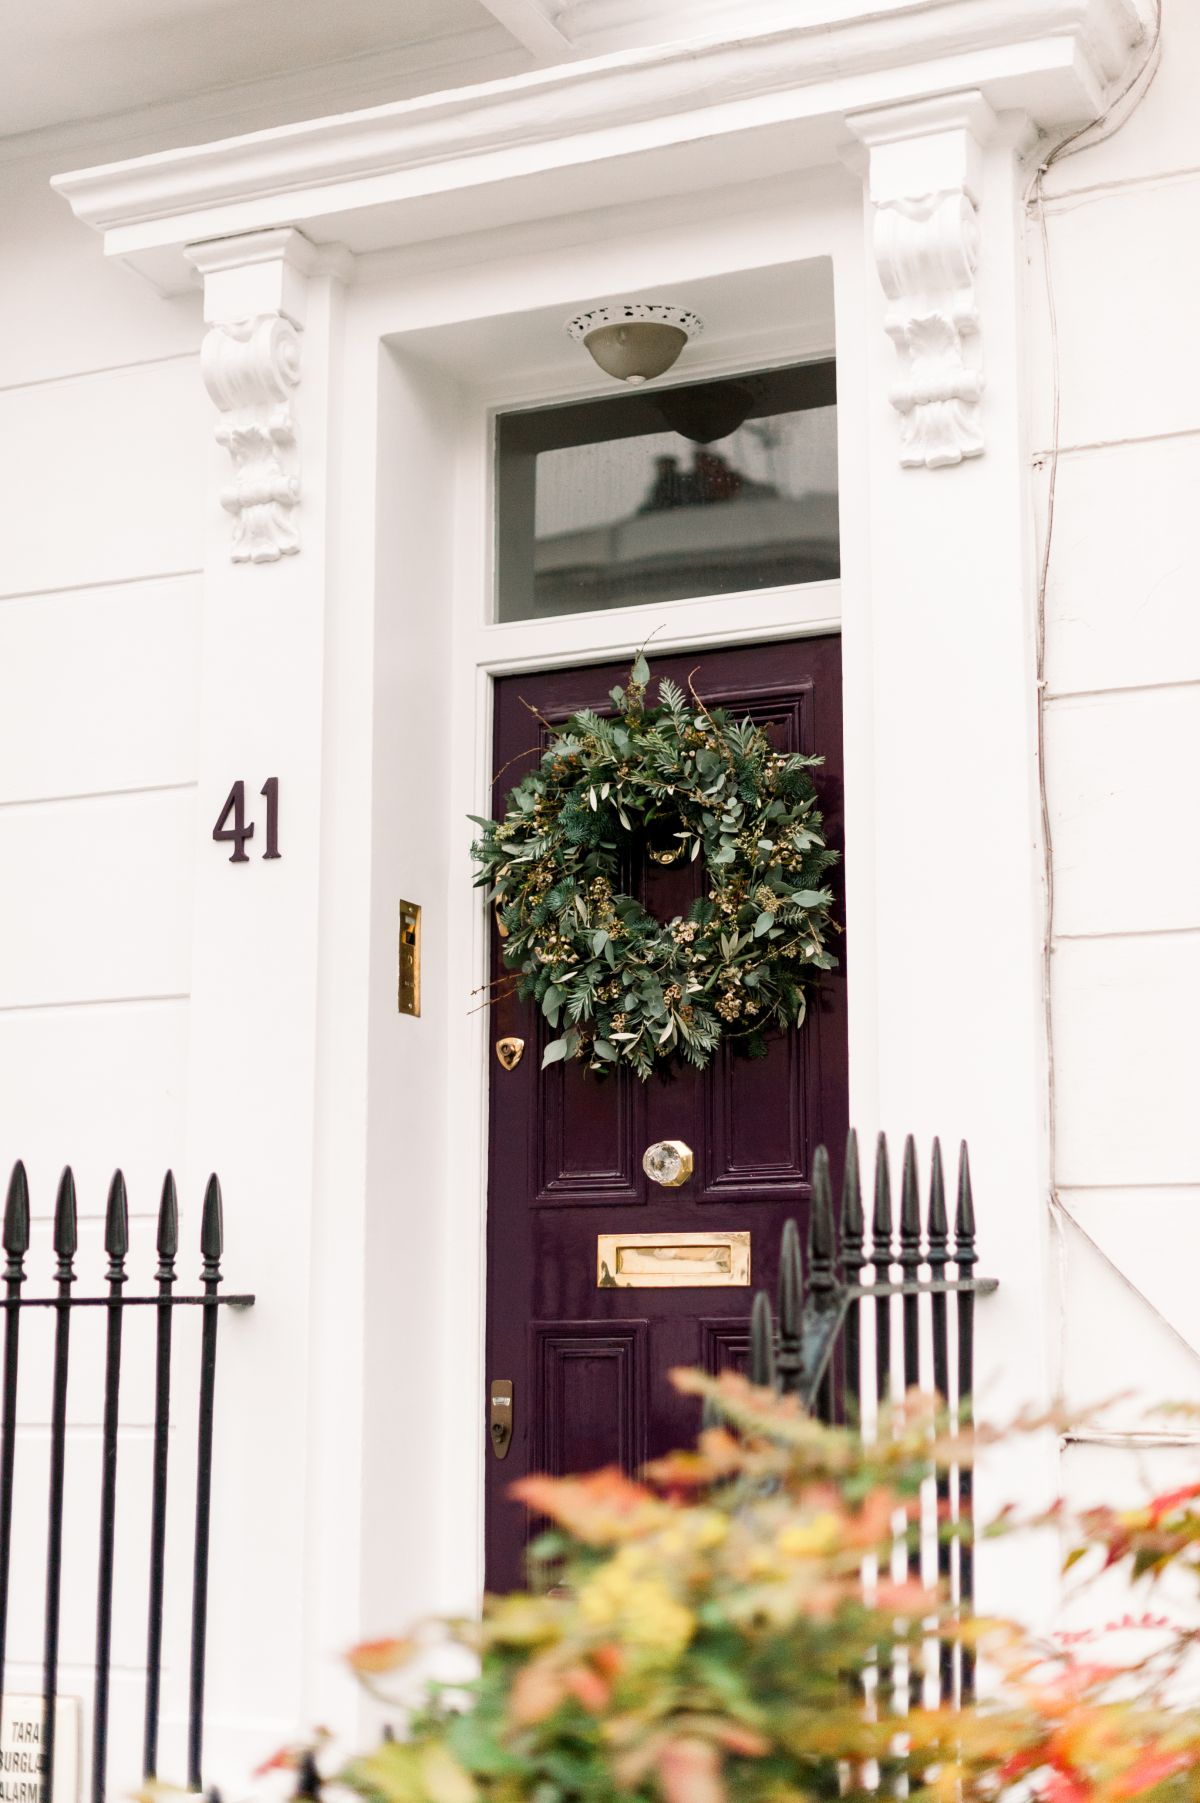 How to make the perfect Christmas wreath